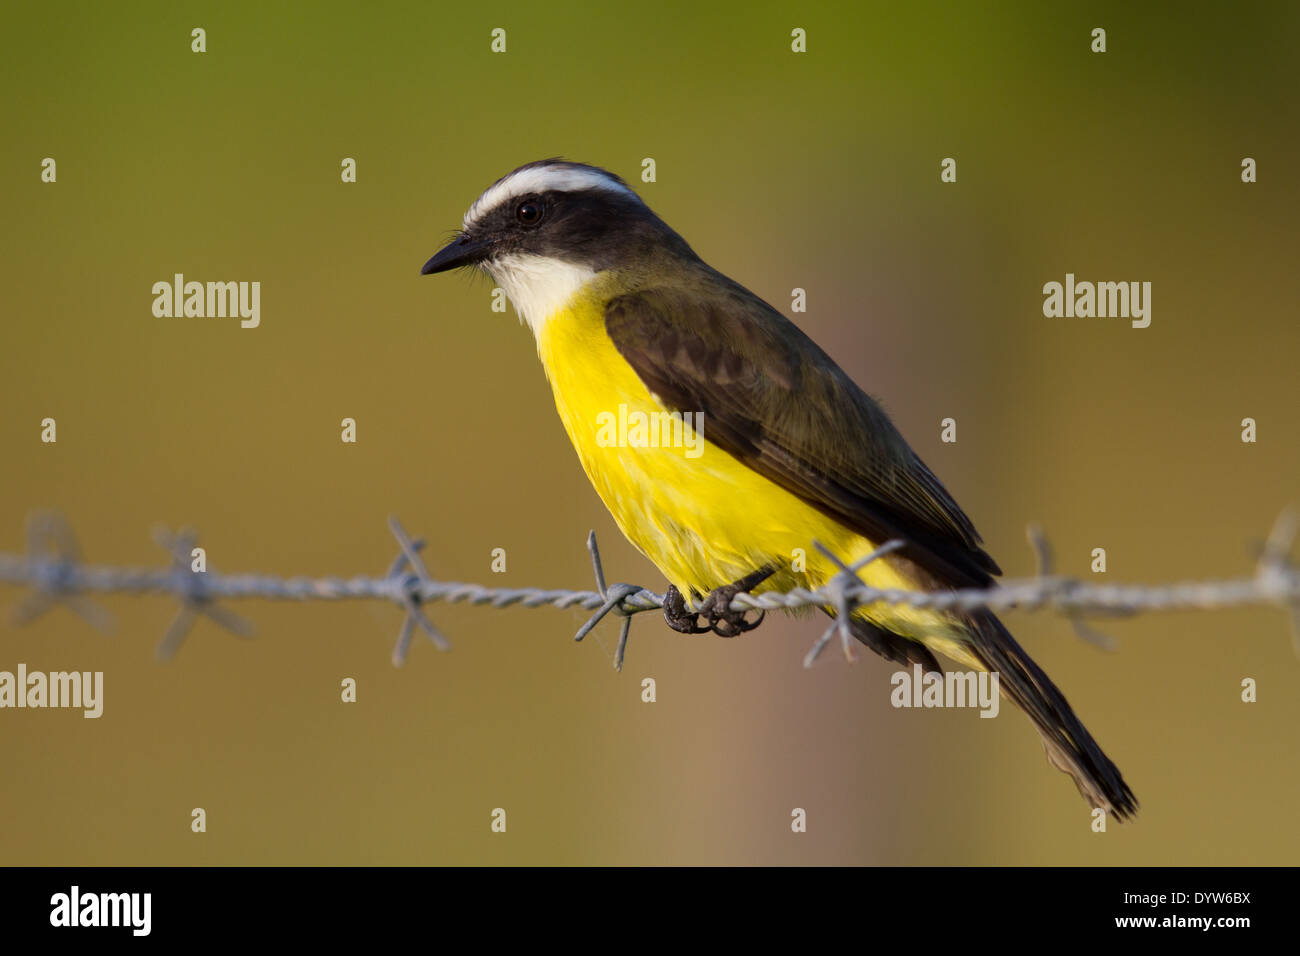 Social Flycatcher (Myiozetetes similis) perched on a barbed wire fence - Stock Image